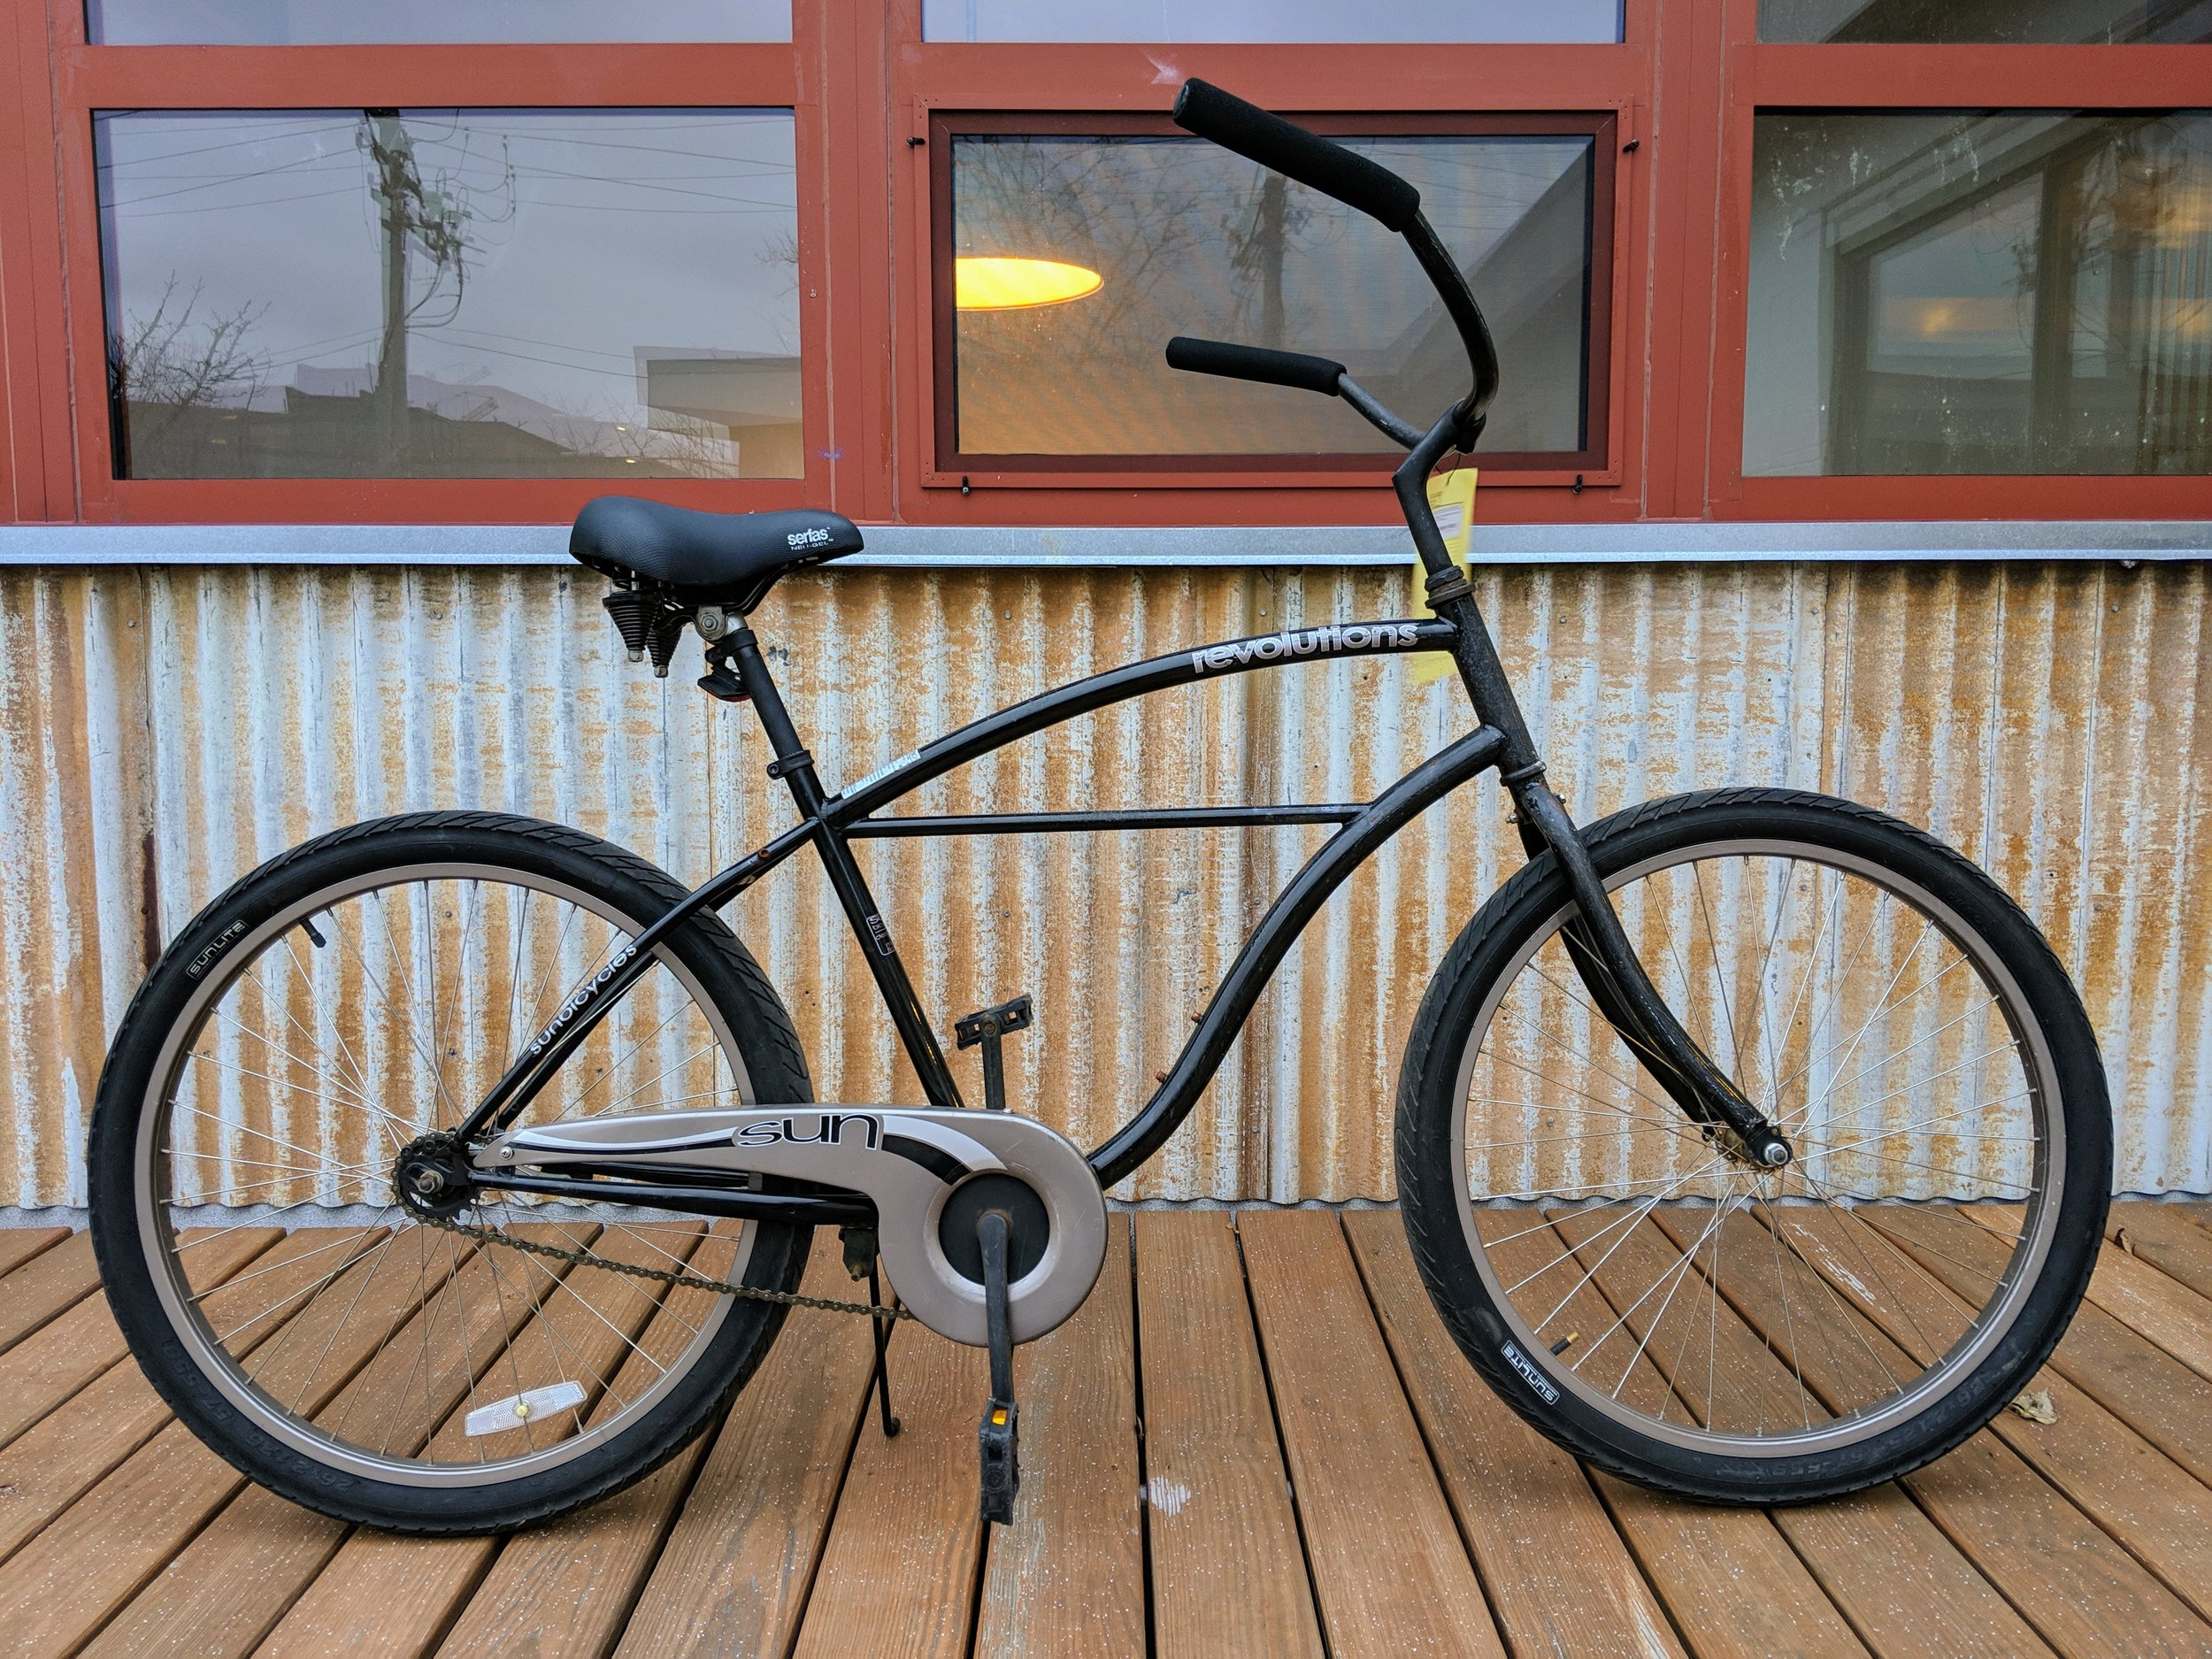 48cm Sunbicycles Revolutions $150